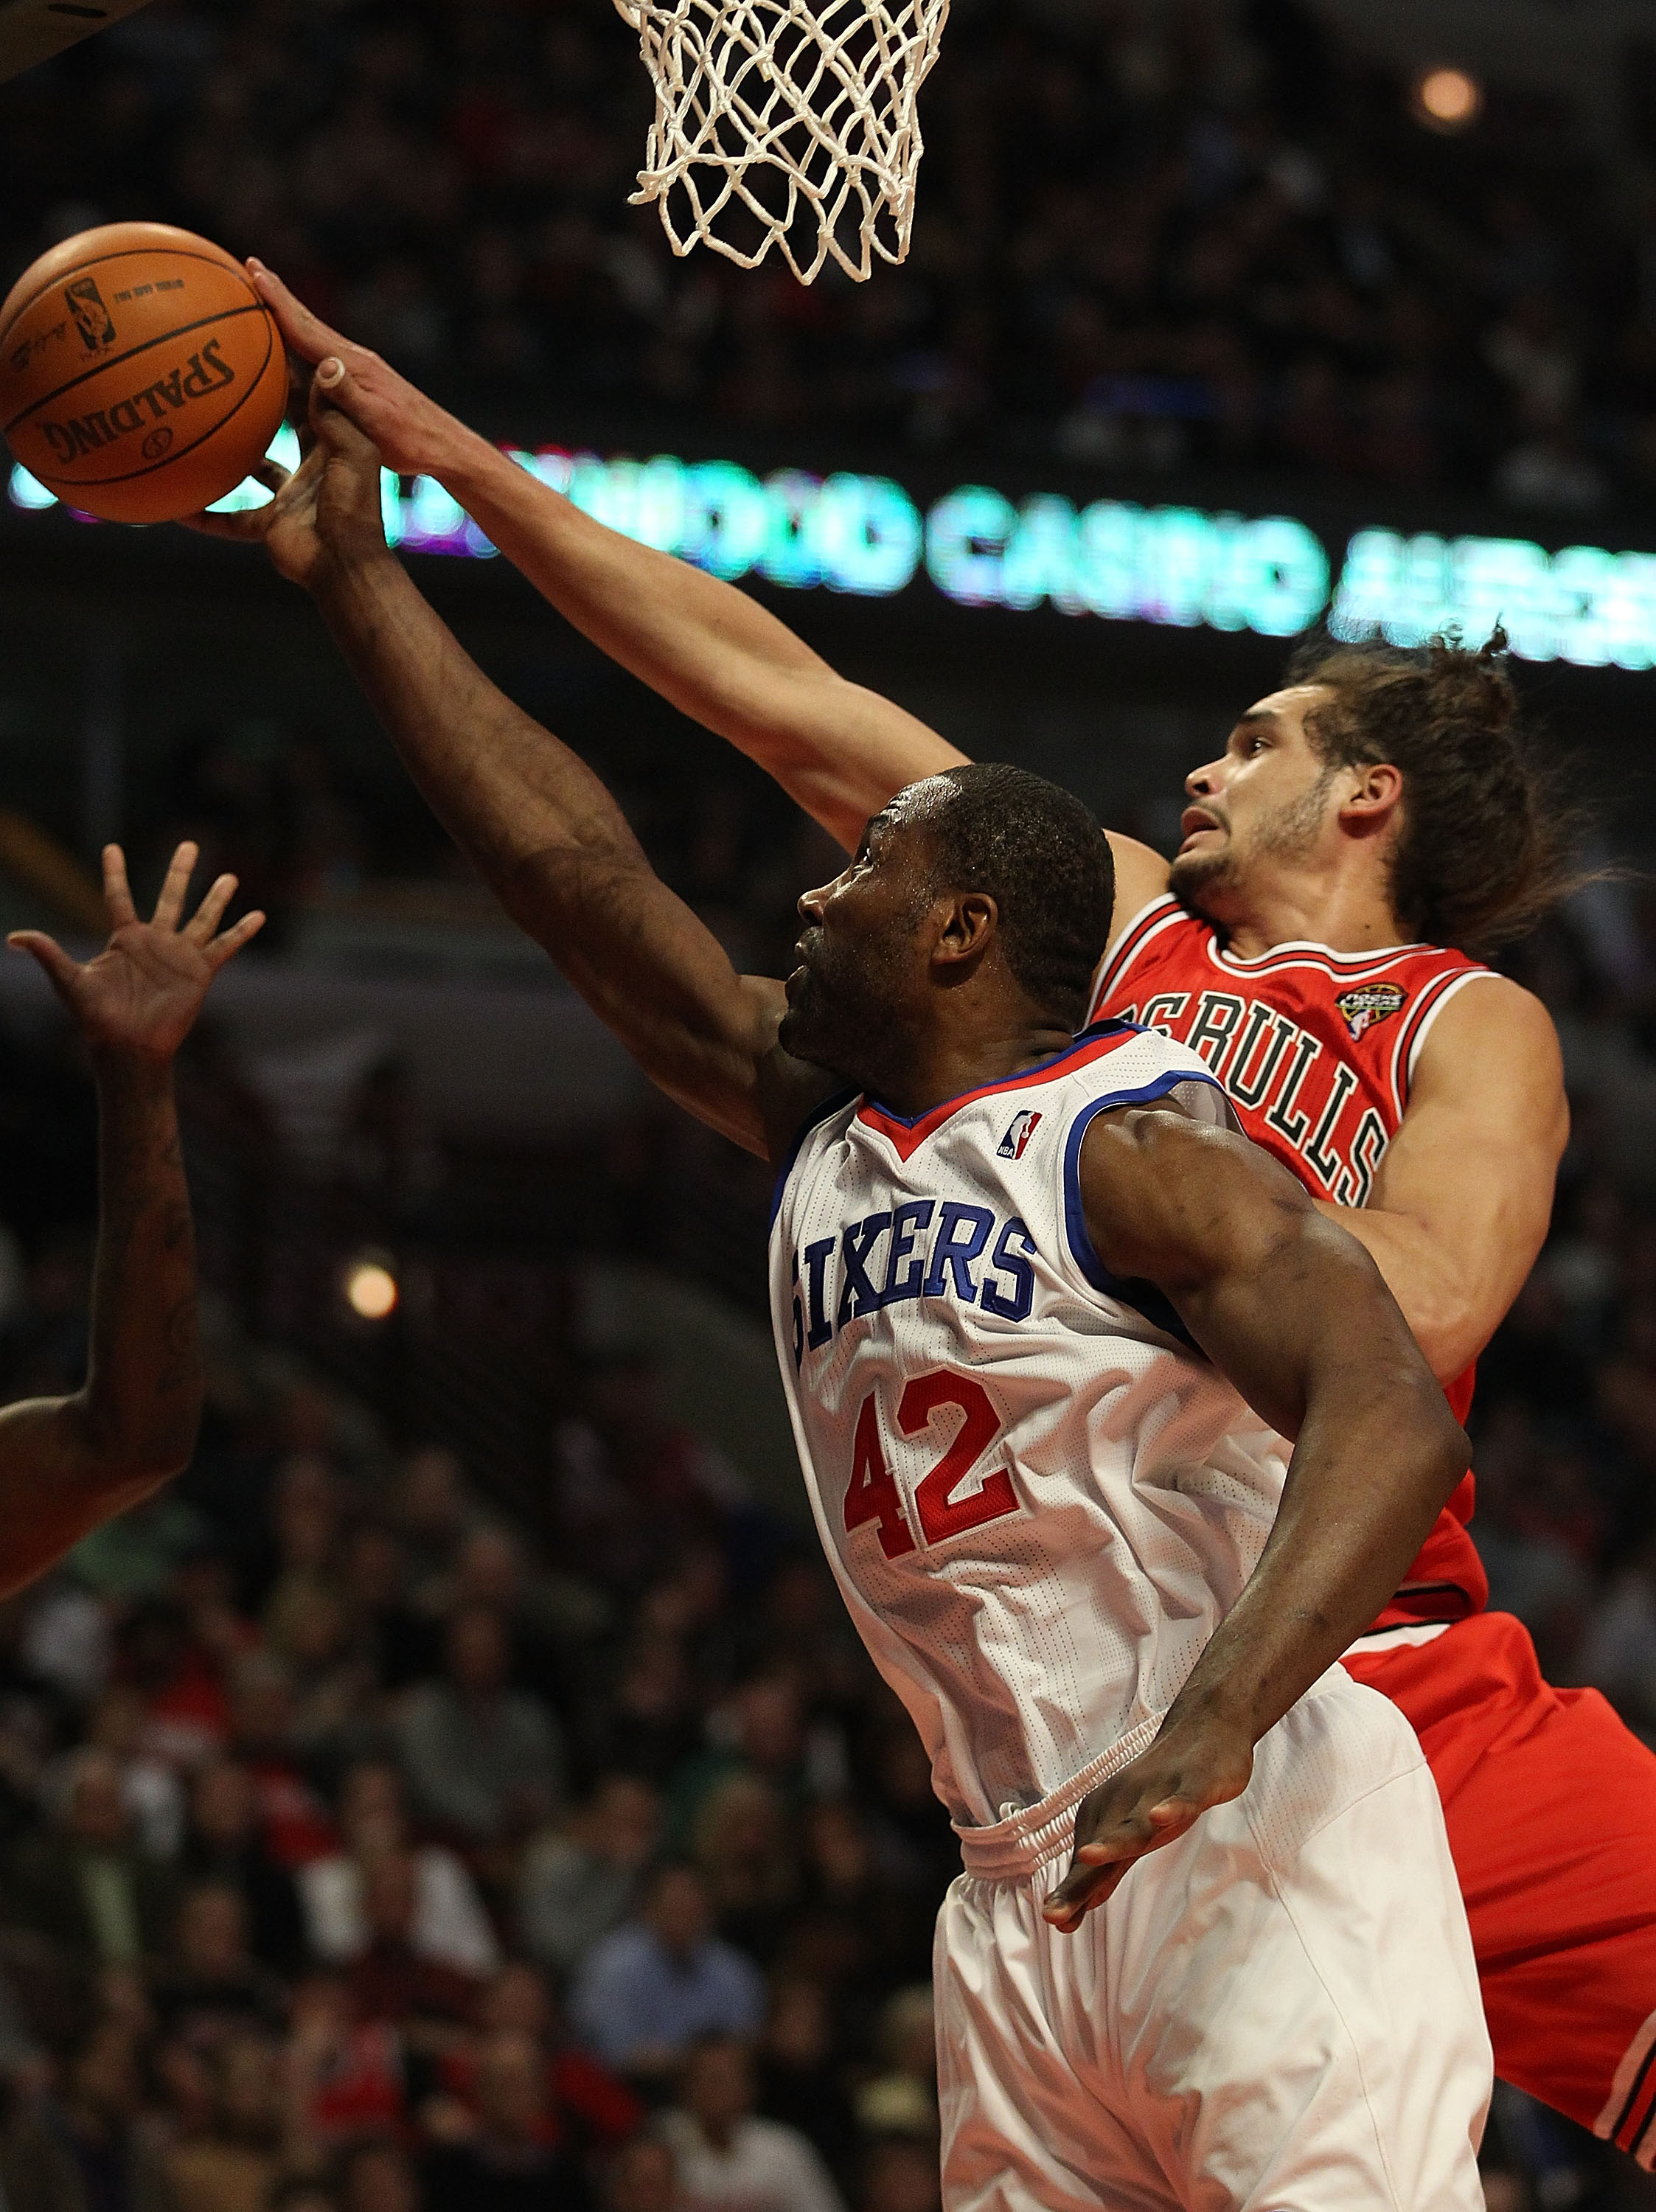 CHICAGO, IL - MARCH 28: Elton Brand #42 of the Philadelphia 76ers and Joakim Noah #13 of the Chicago Bulls reach for a rebound at the United Center on March 28, 2011 in Chicago, Illinois. NOTE TO USER: User expressly acknowledges and agrees that, by downl